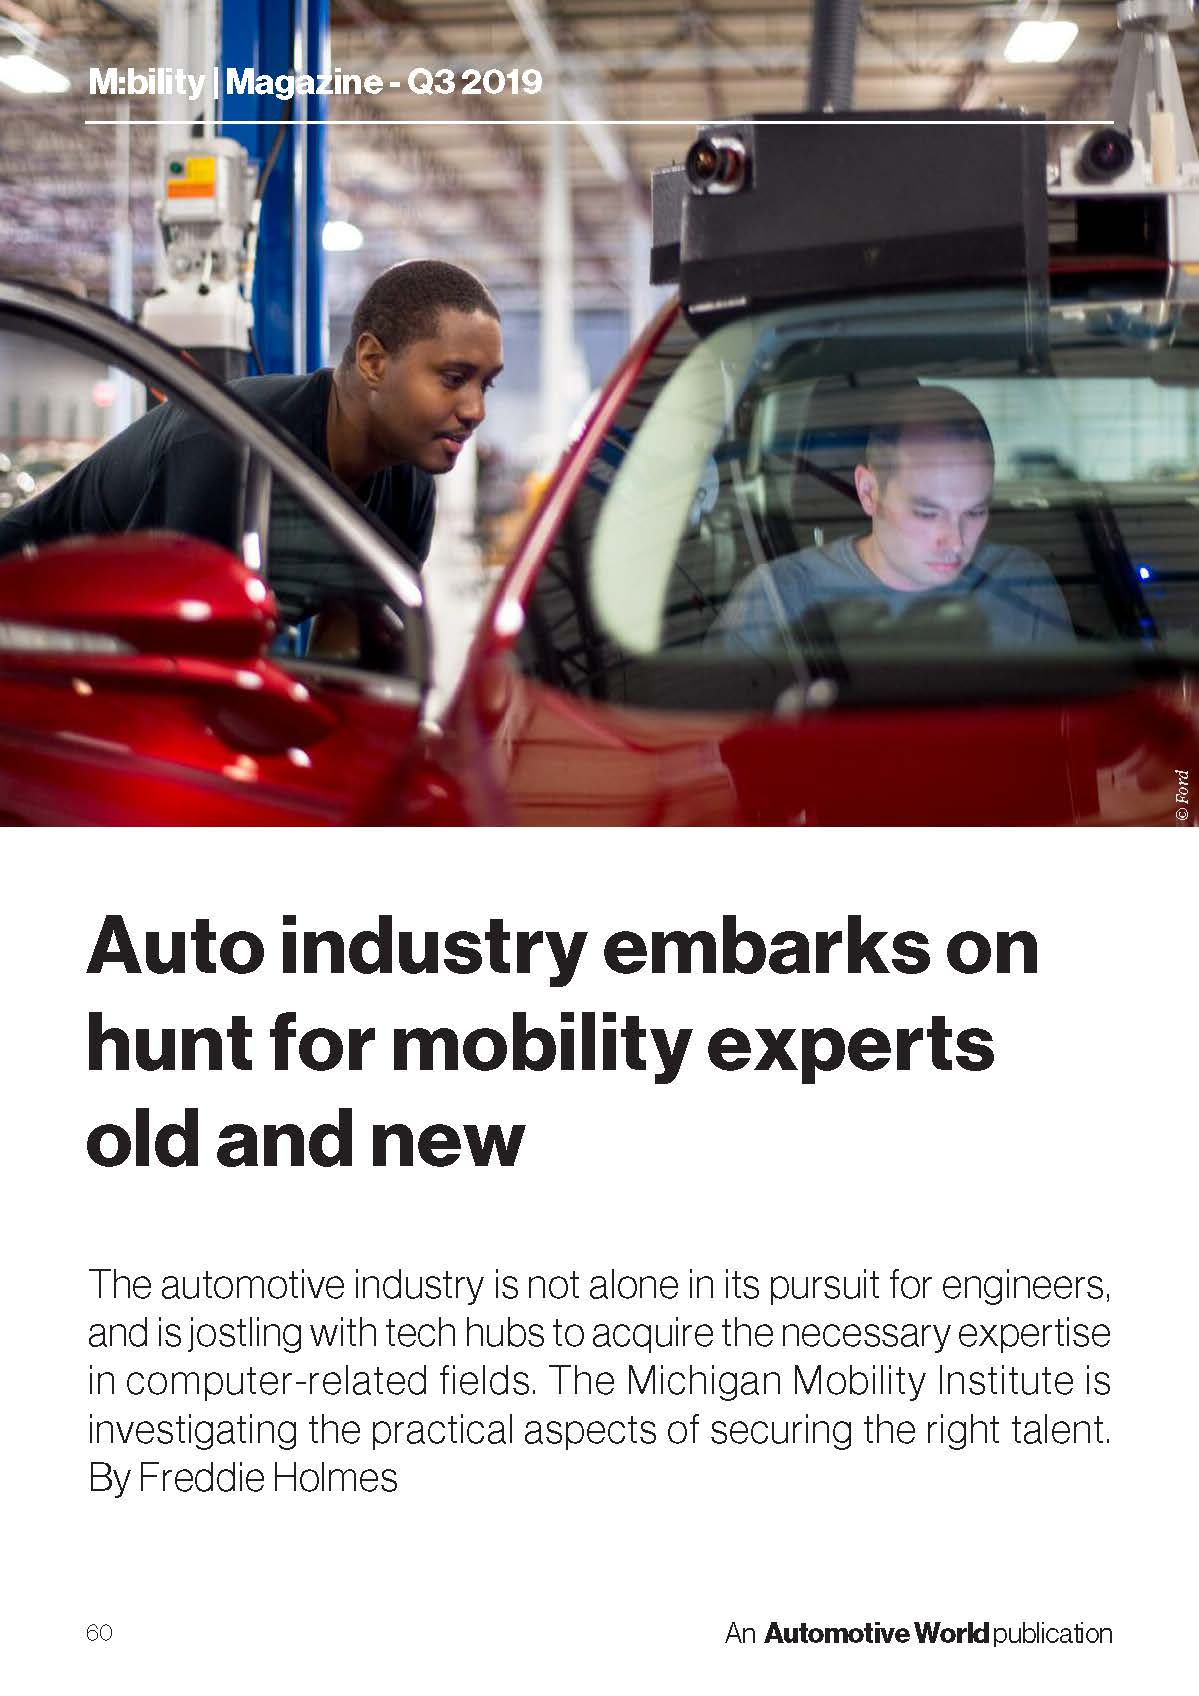 M:bility - Auto industry embarks on hunt for mobility experts old and new